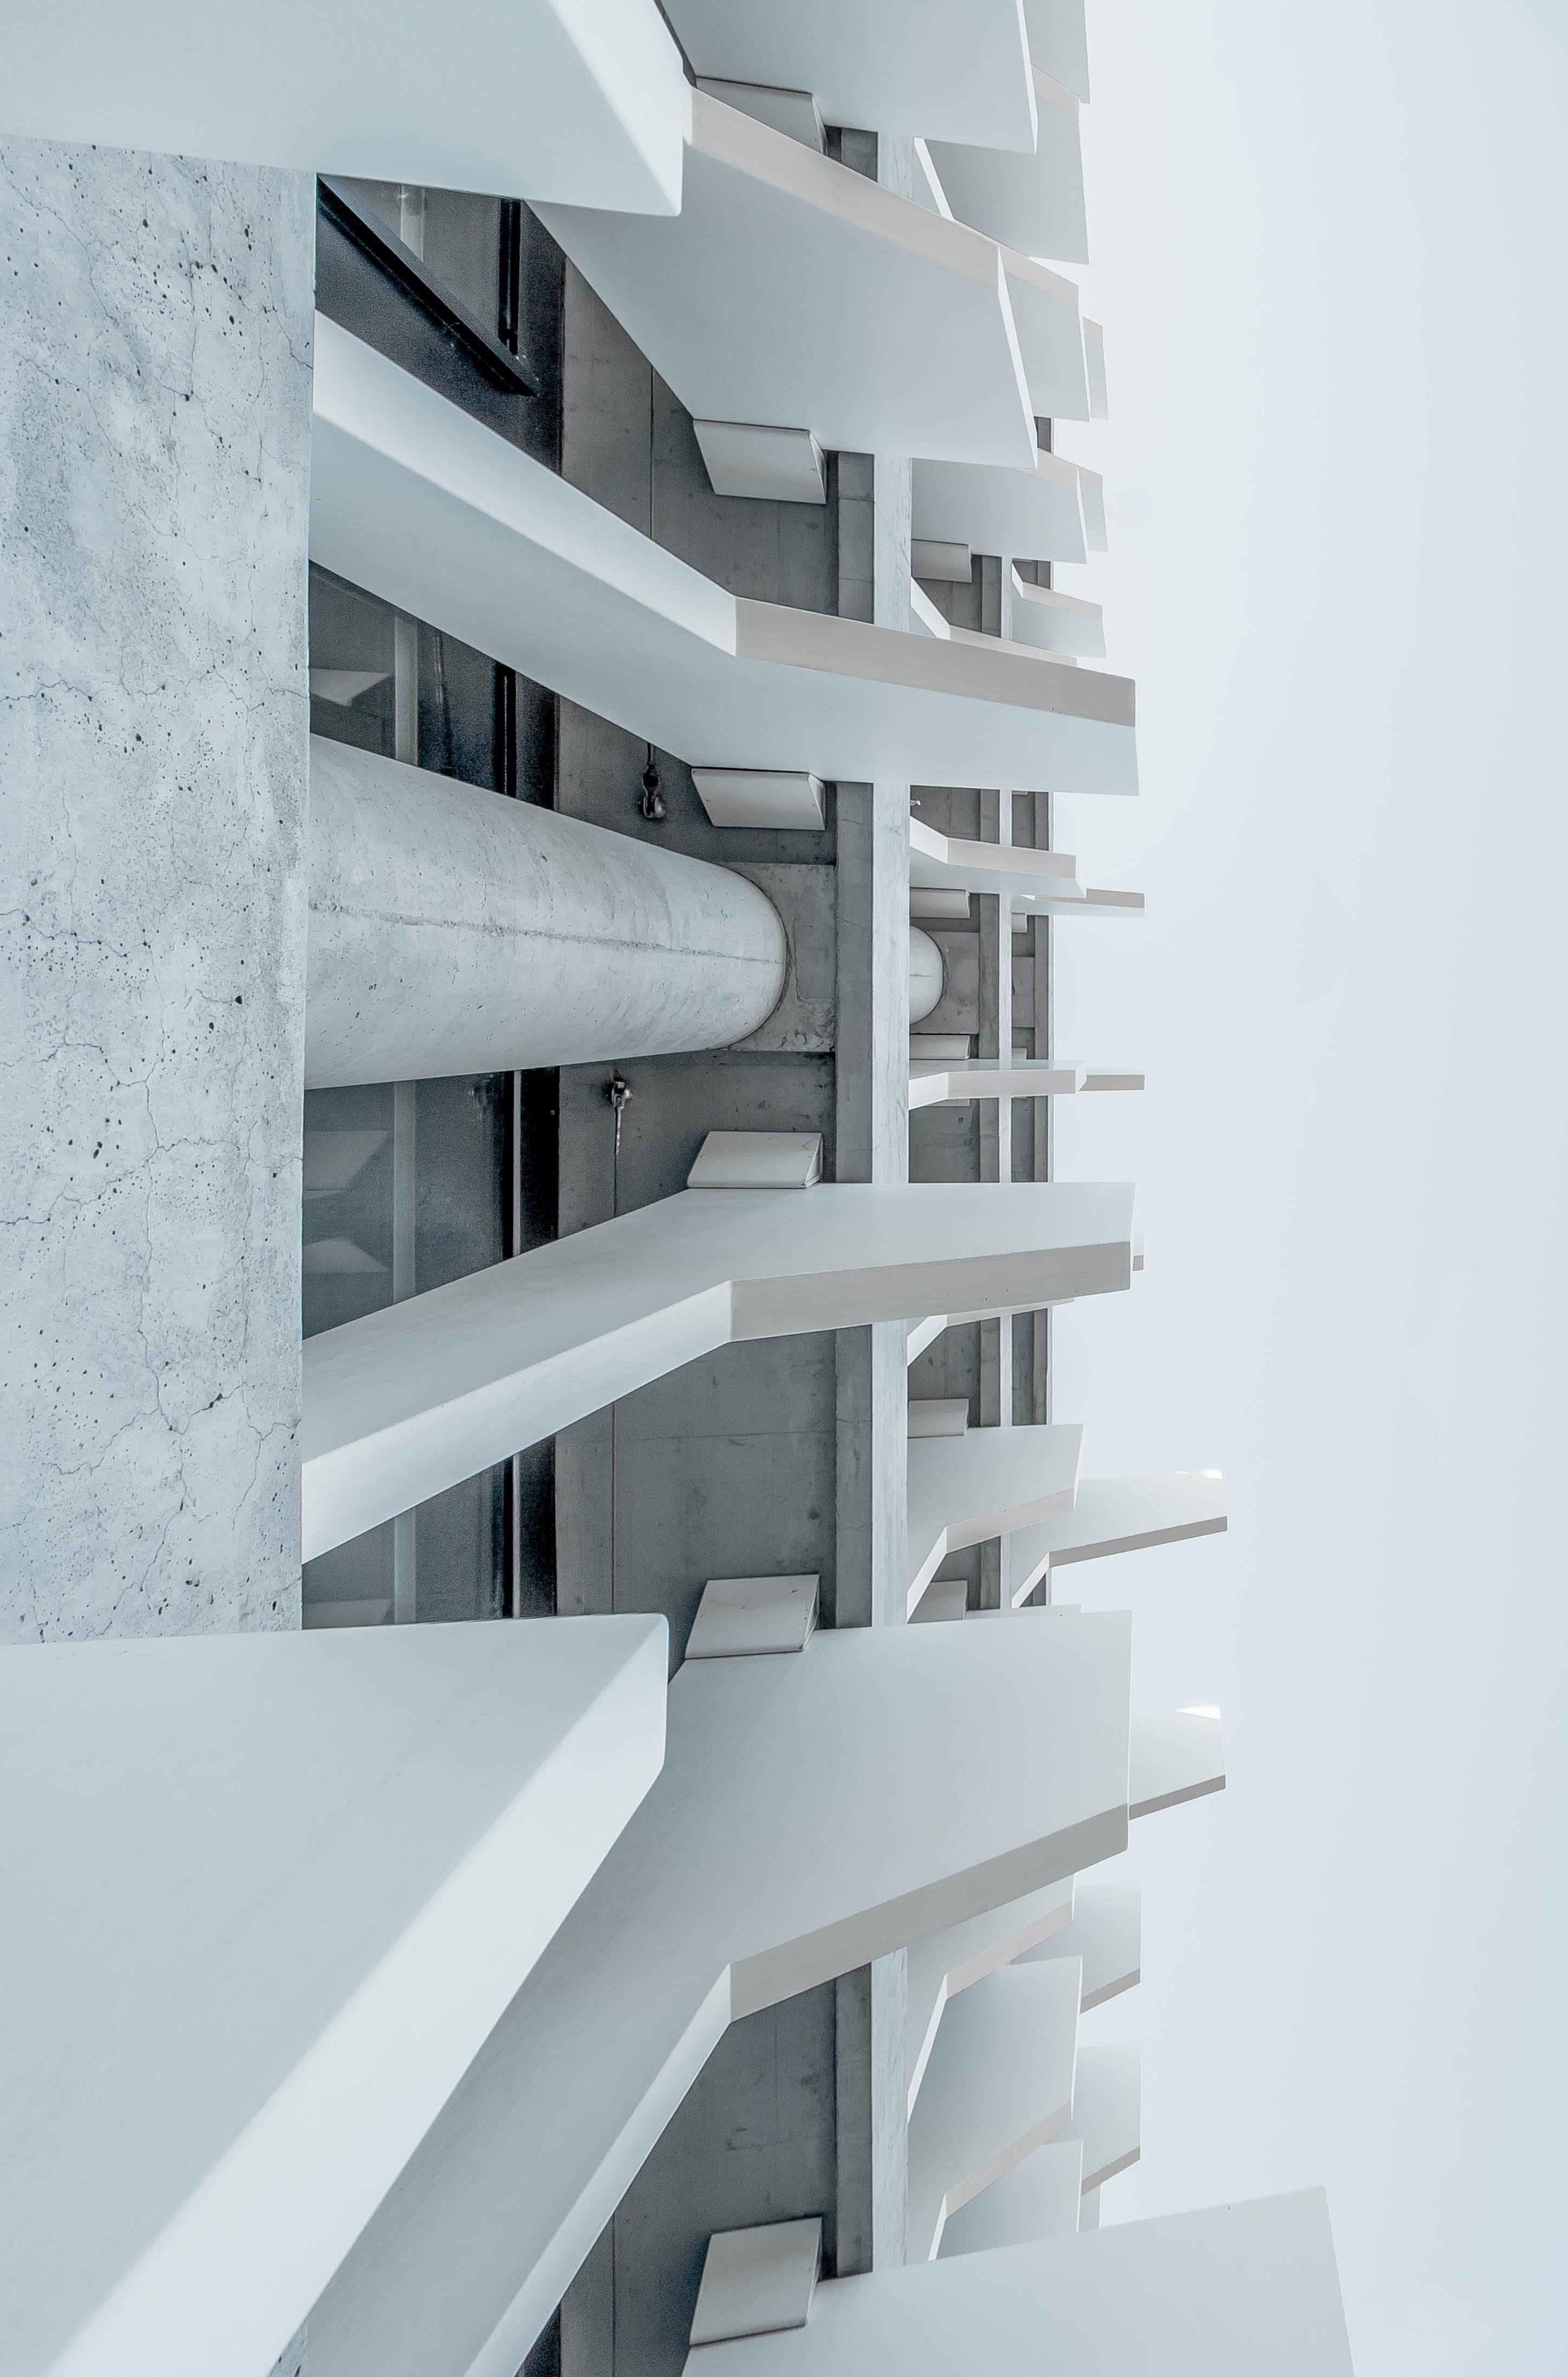 A low-angle shot of a white concrete building facade in Madrid